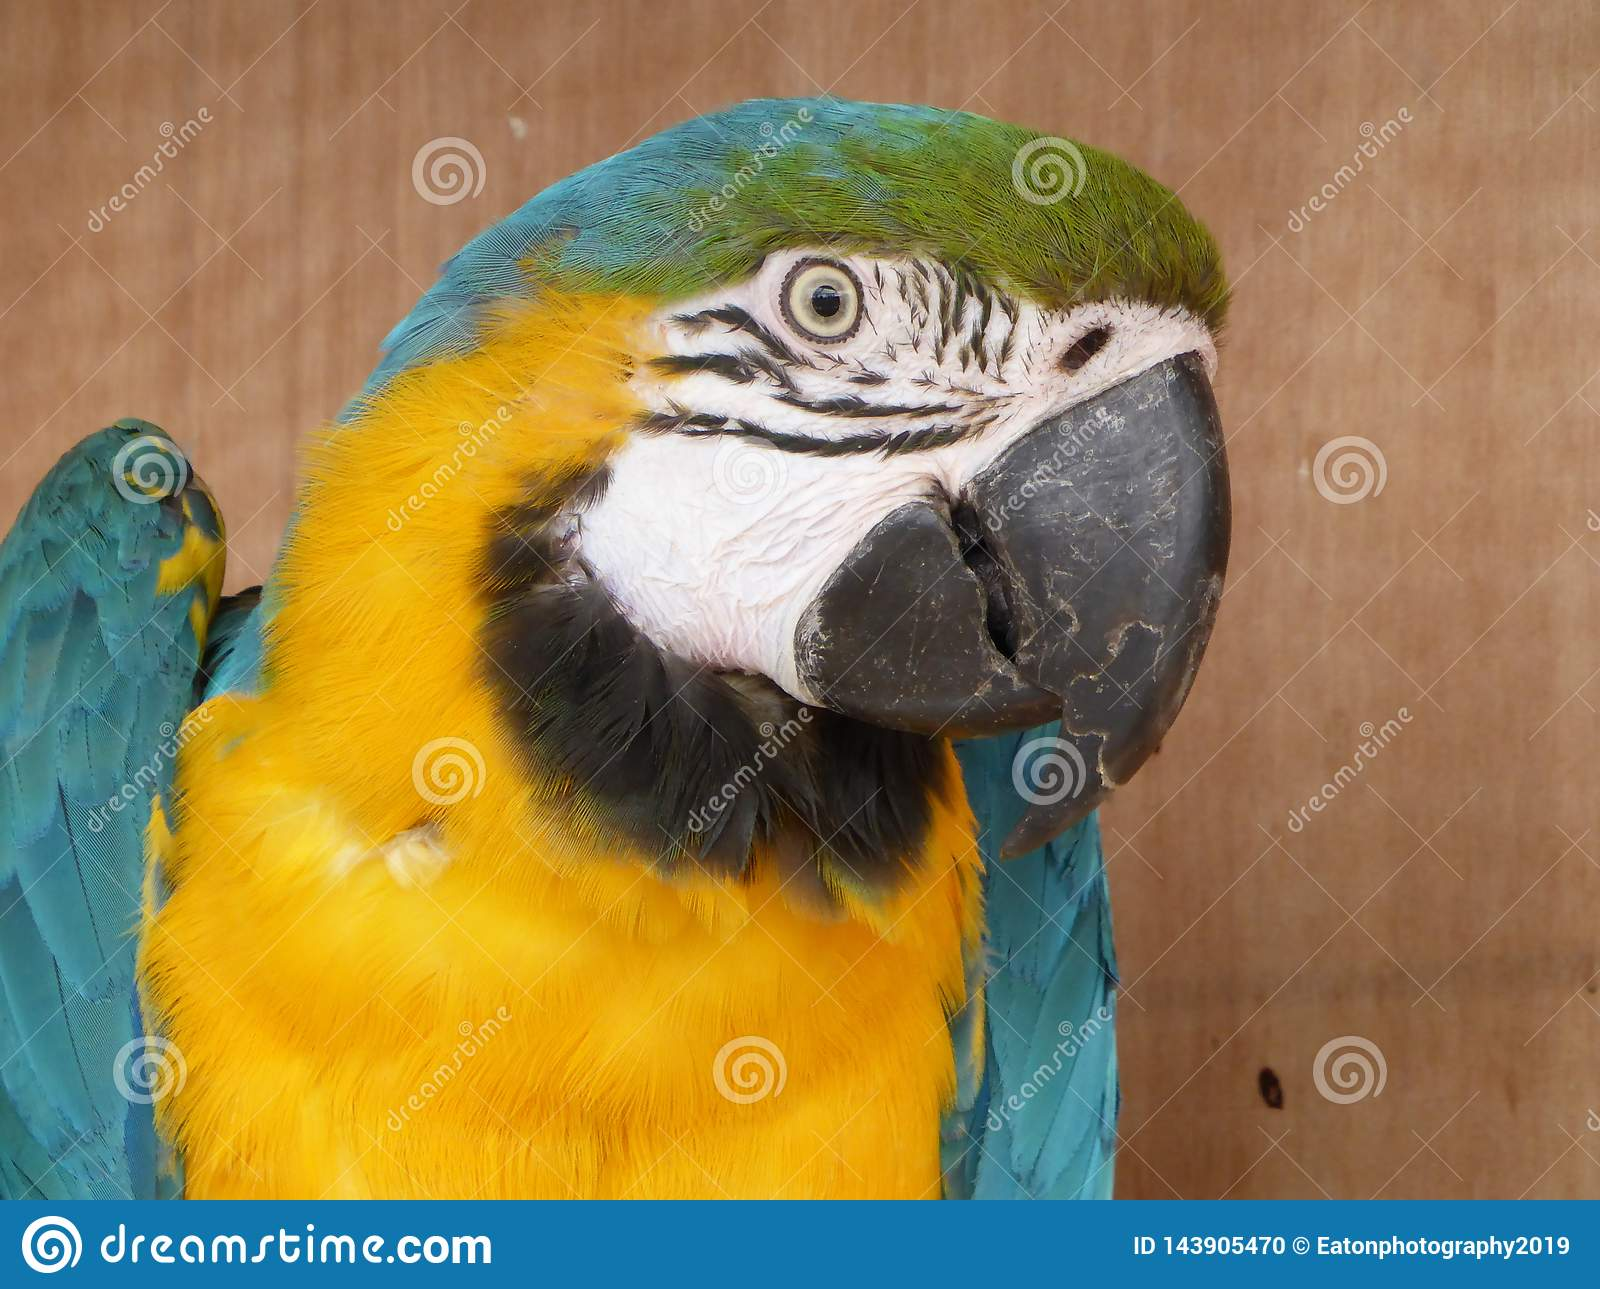 Blue and yellow macaw looking at the camera